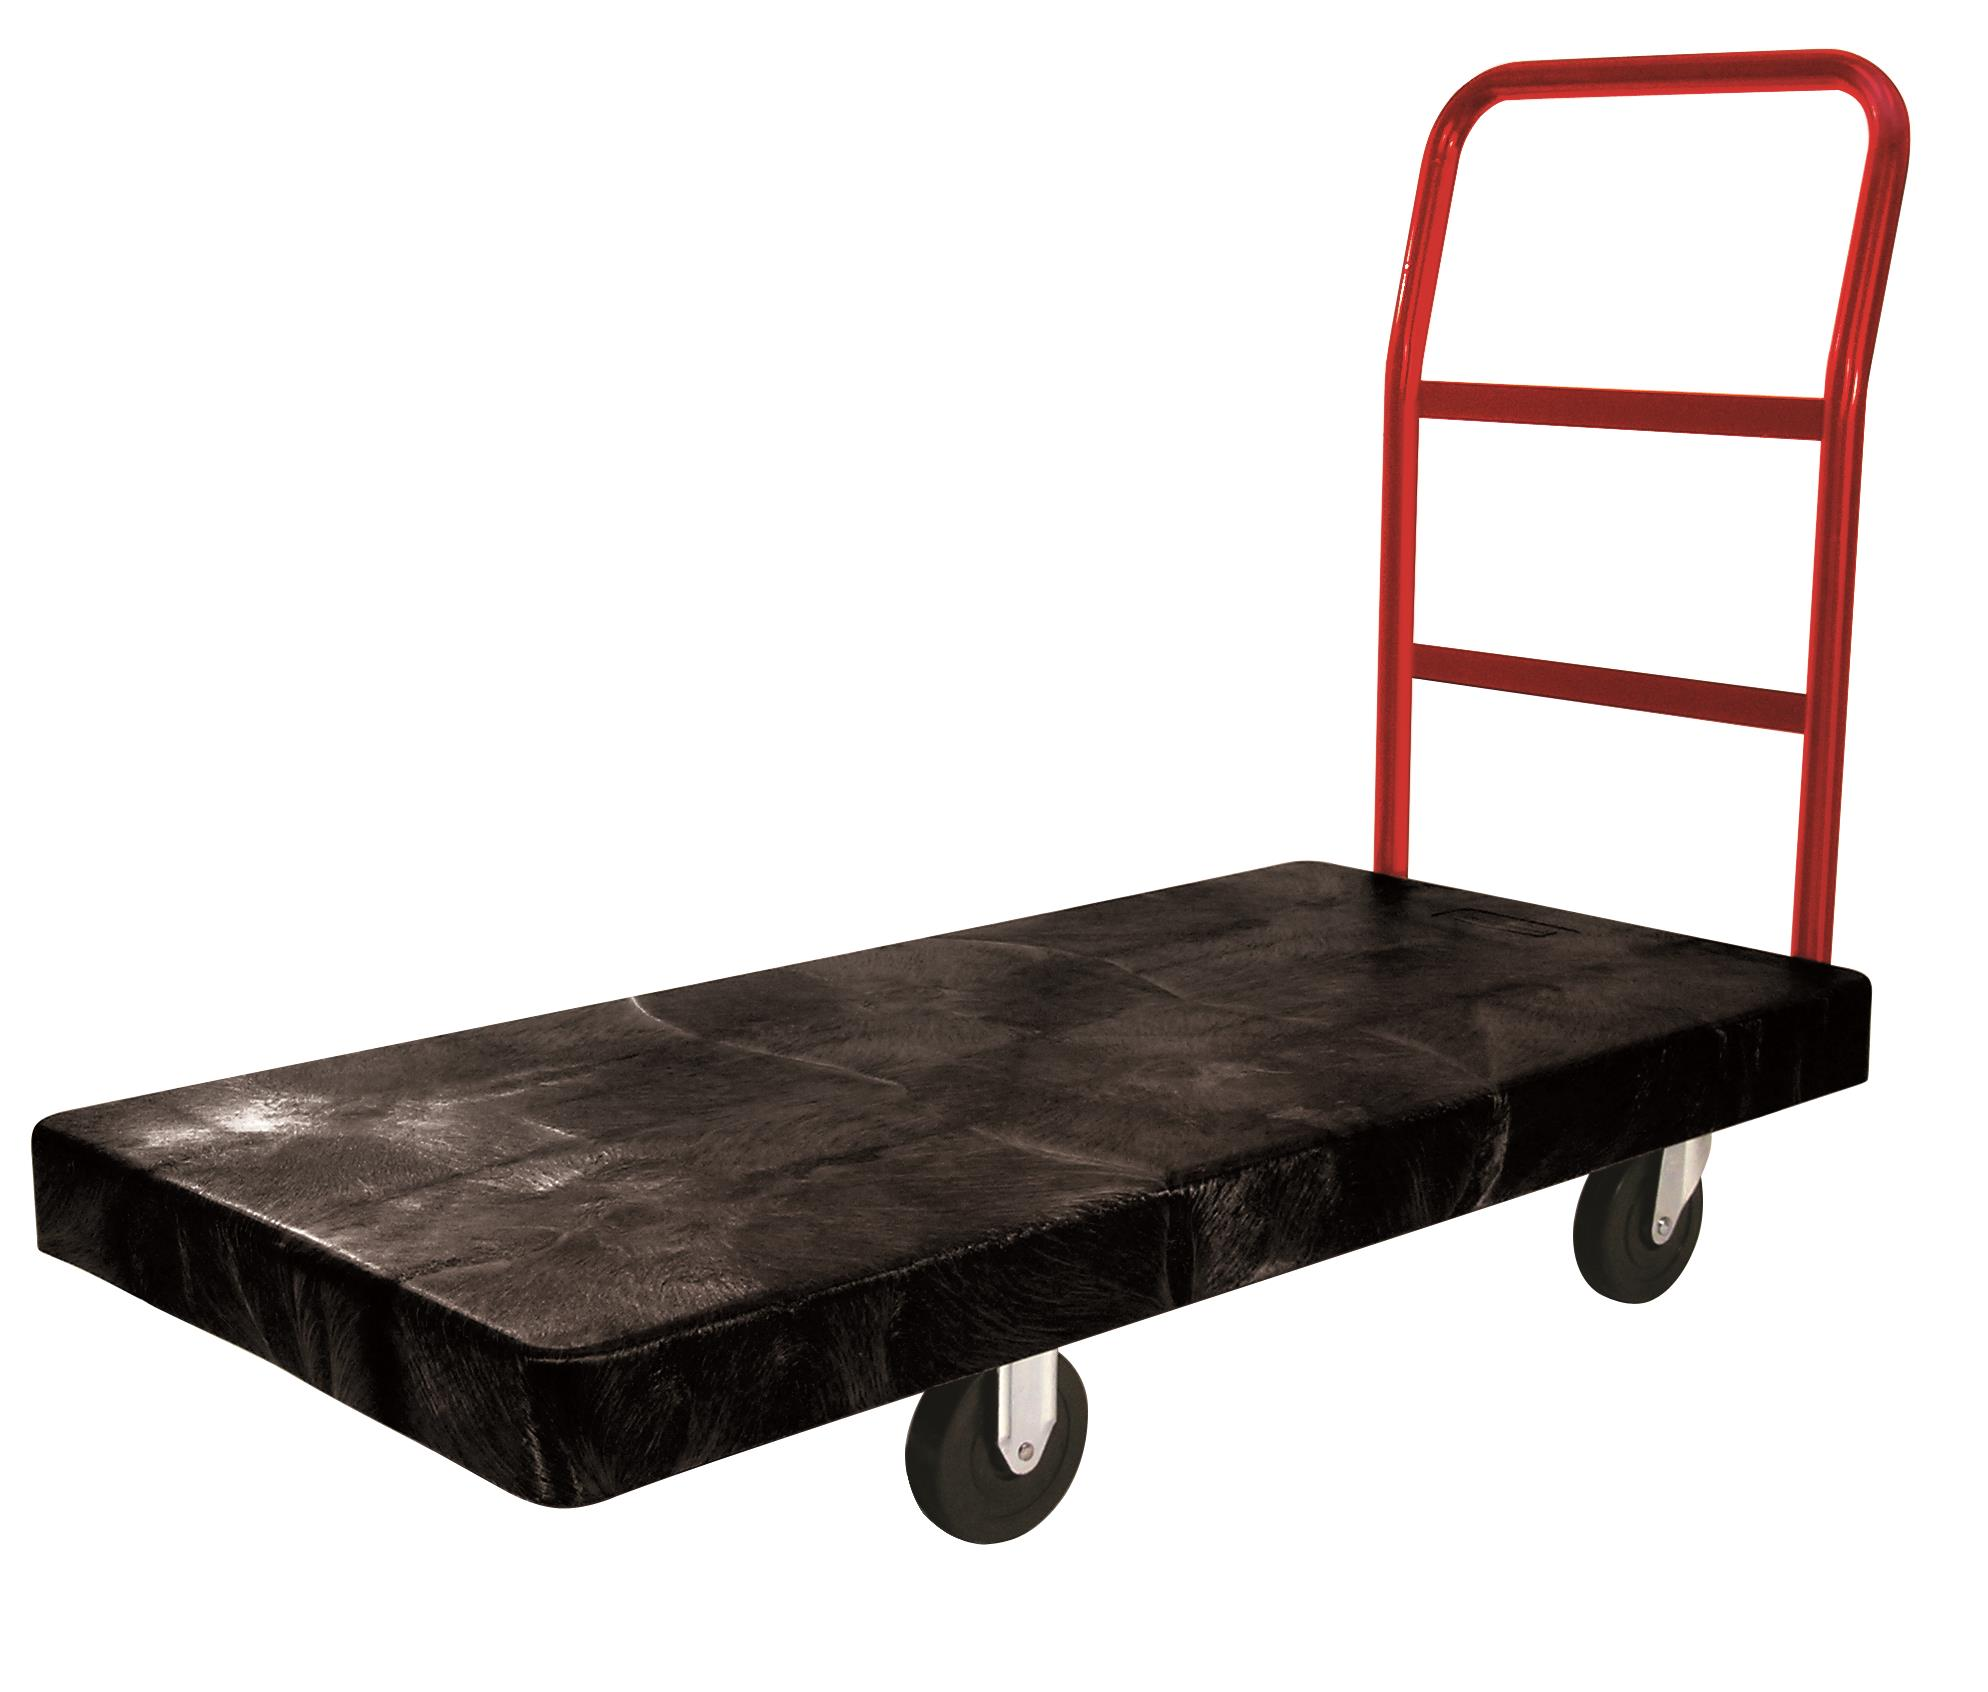 PicturesLogo/PLATFORM TRUCKS.jpg